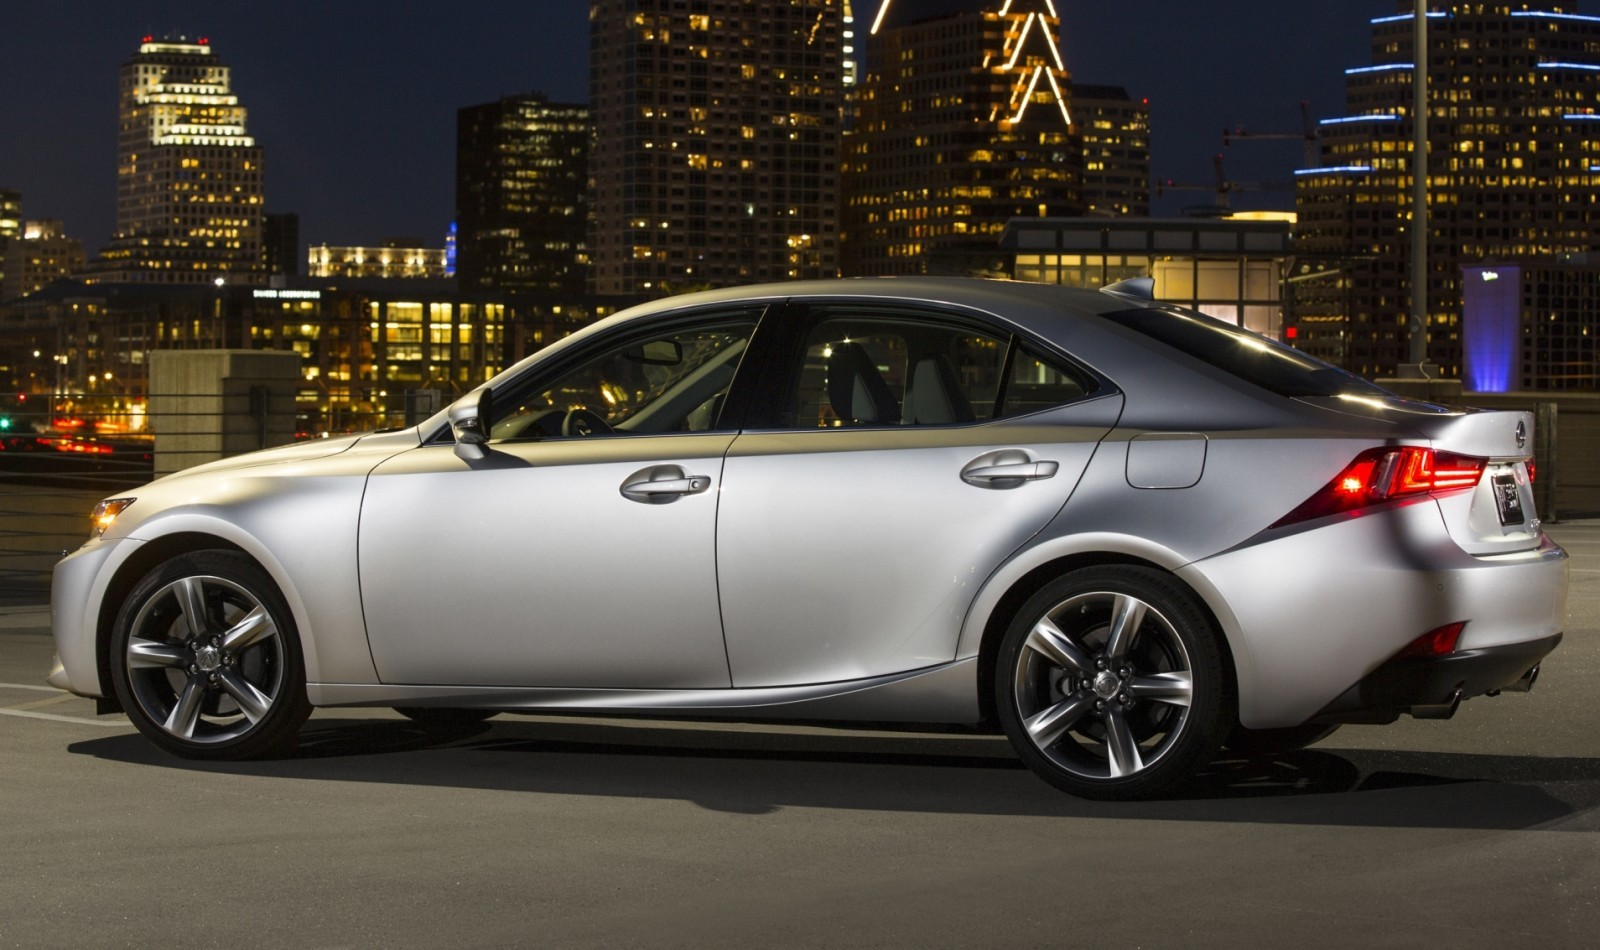 2014_Lexus_IS_350_024